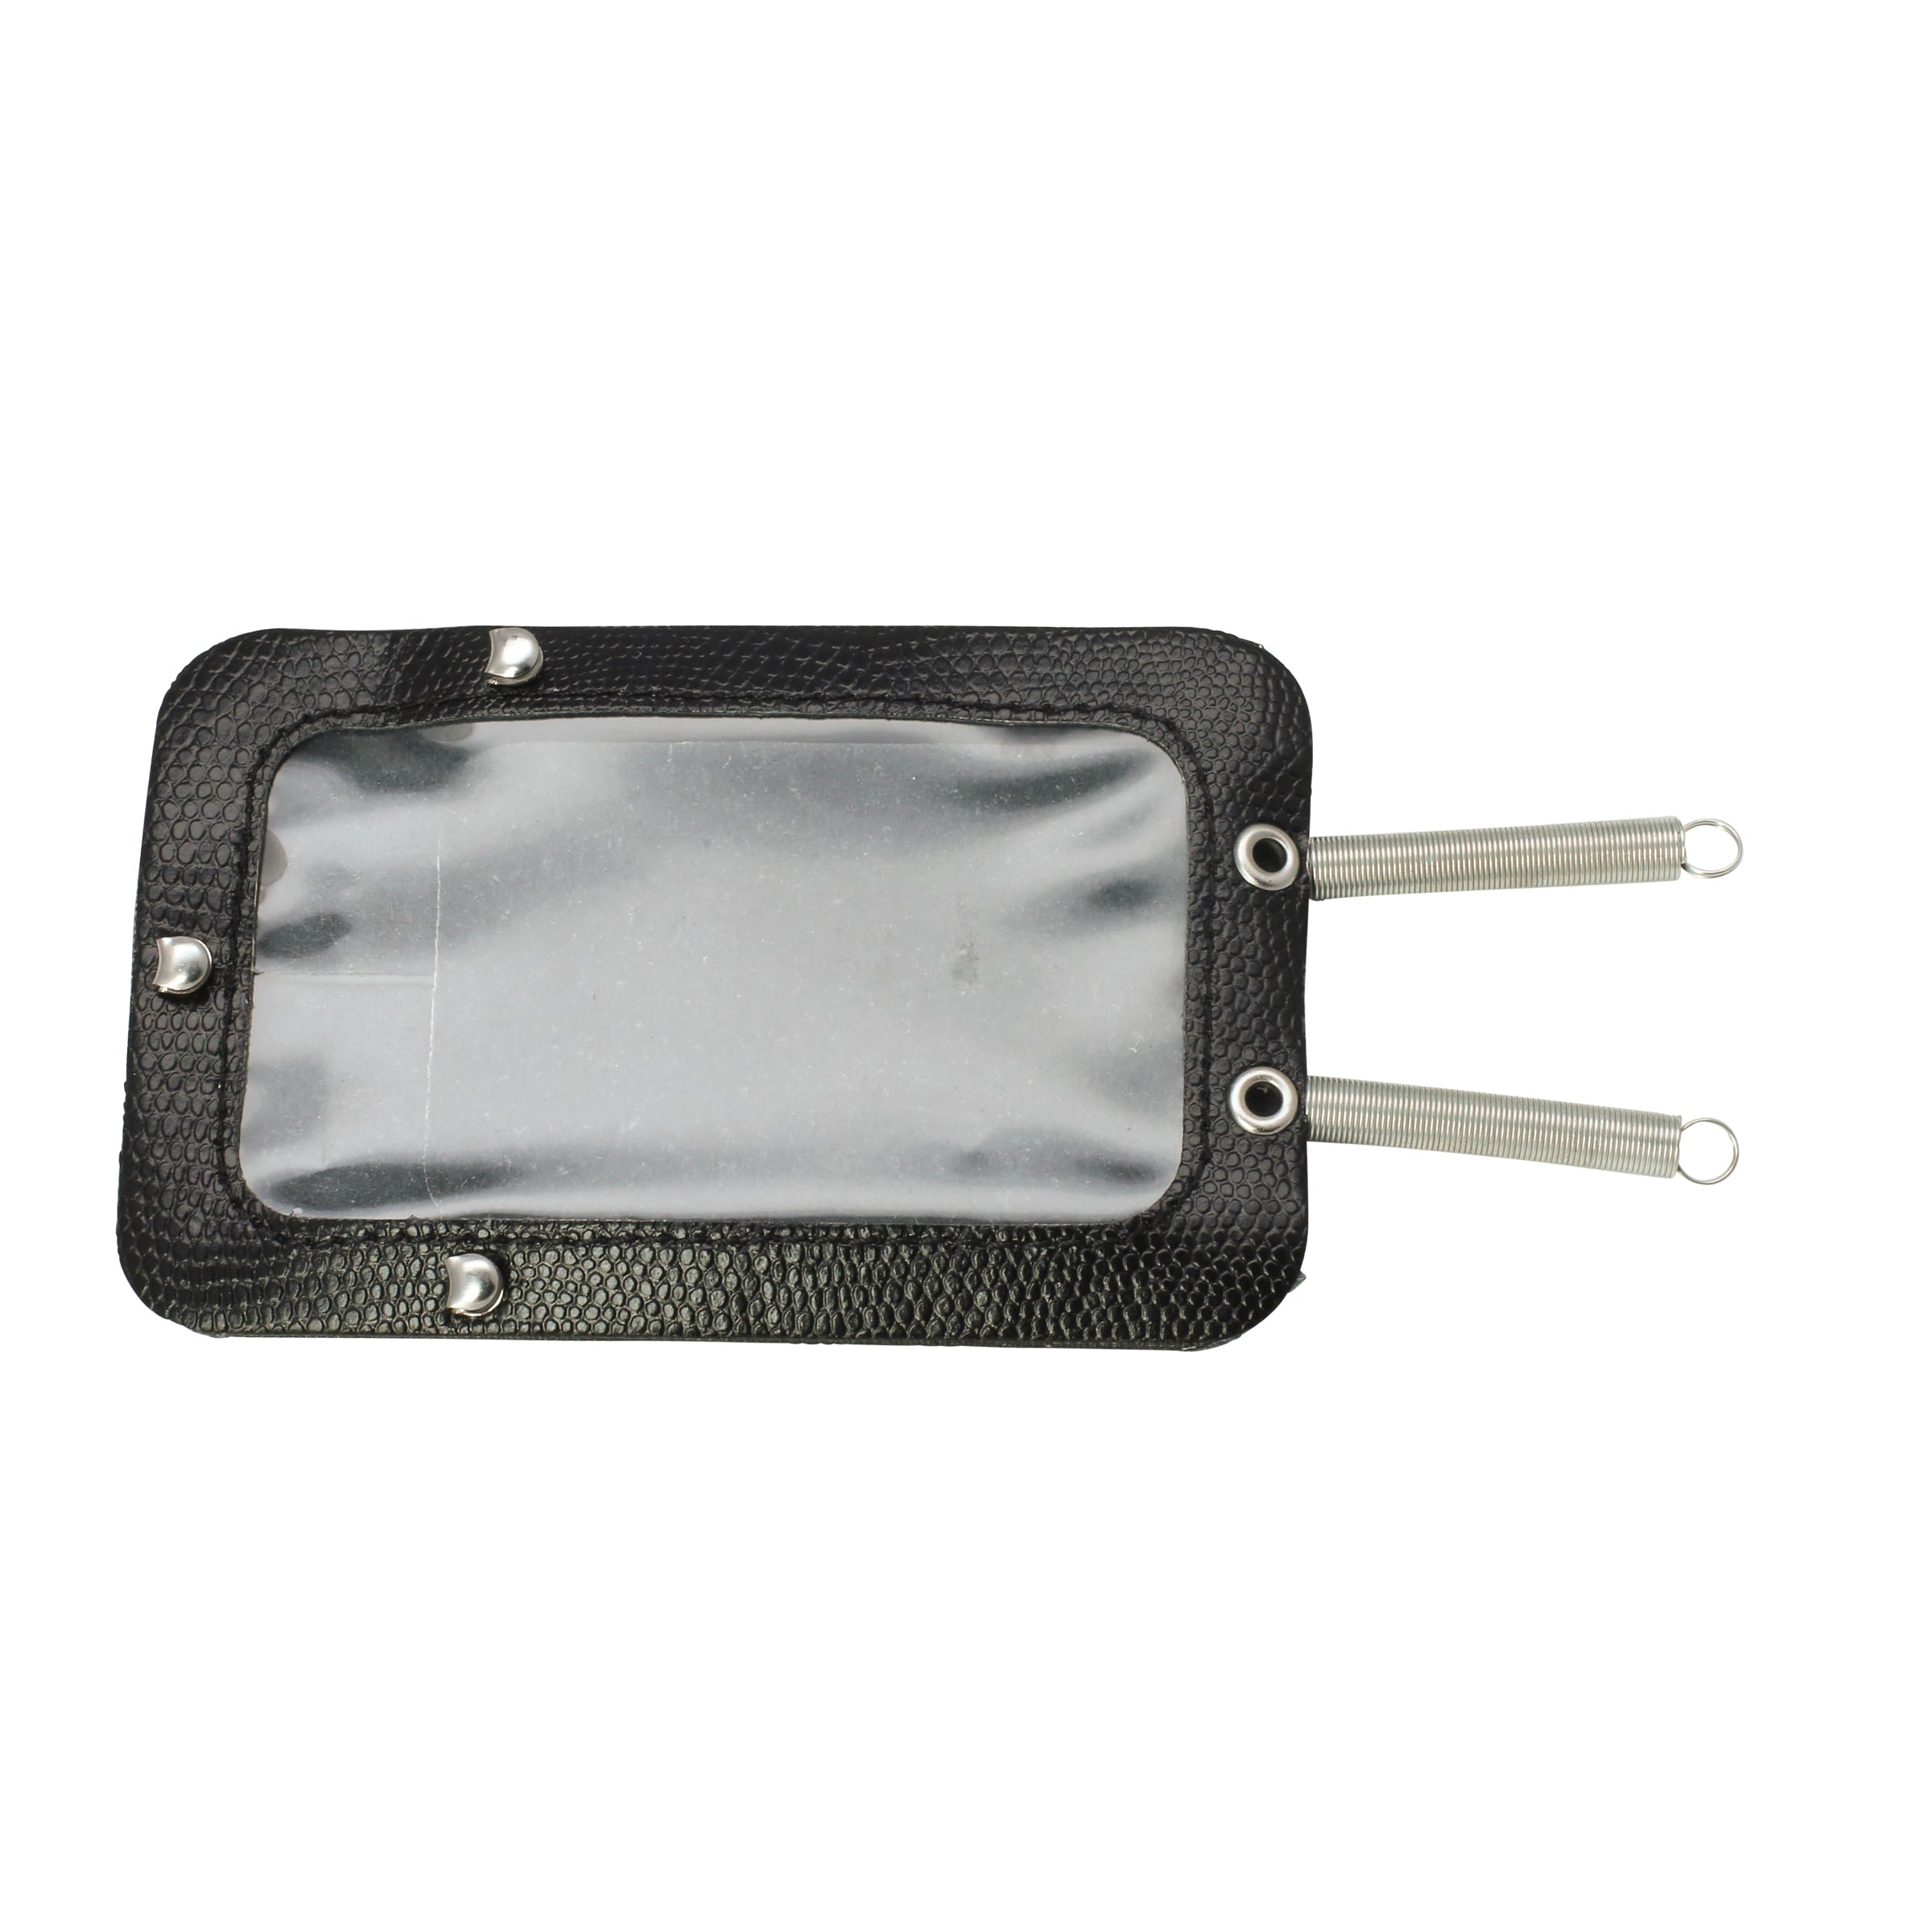 Registration Holder Ford • Steering Column Type